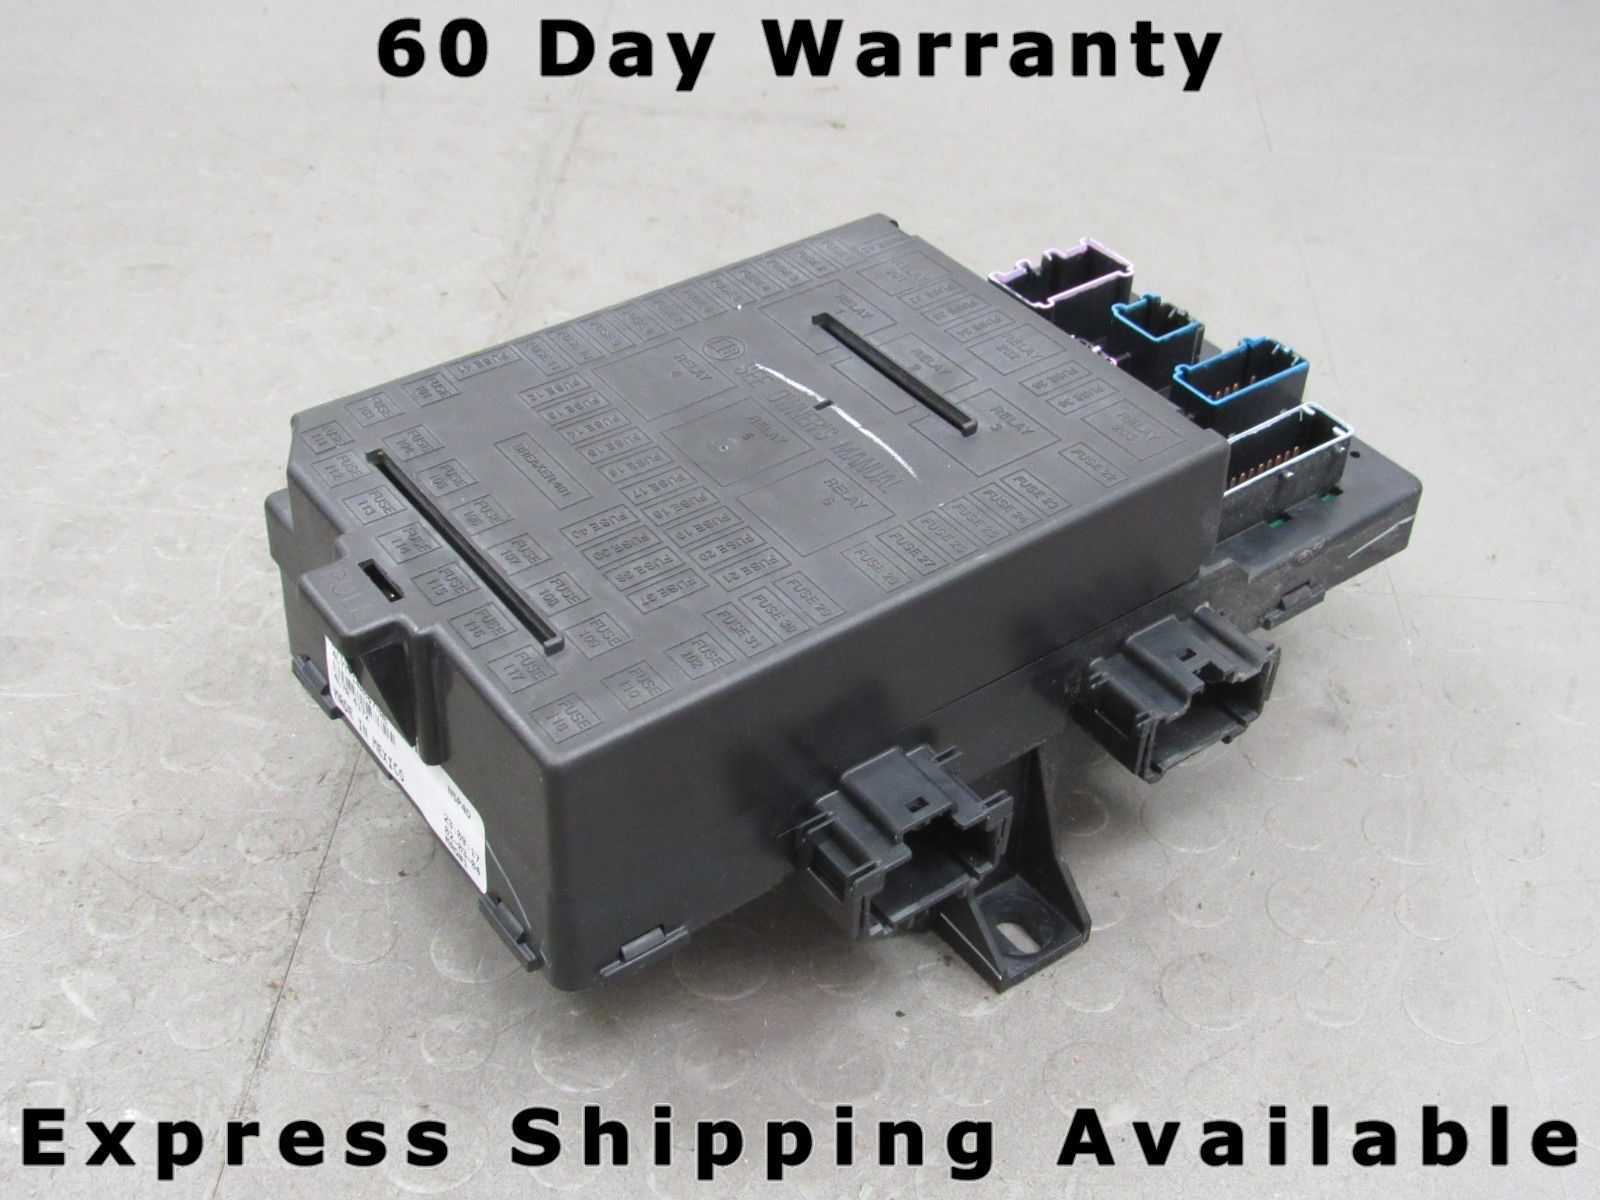 04 Expedition Navigator Interior Fuse Relay Box Block Center 4L7T-14A067-AE  AB